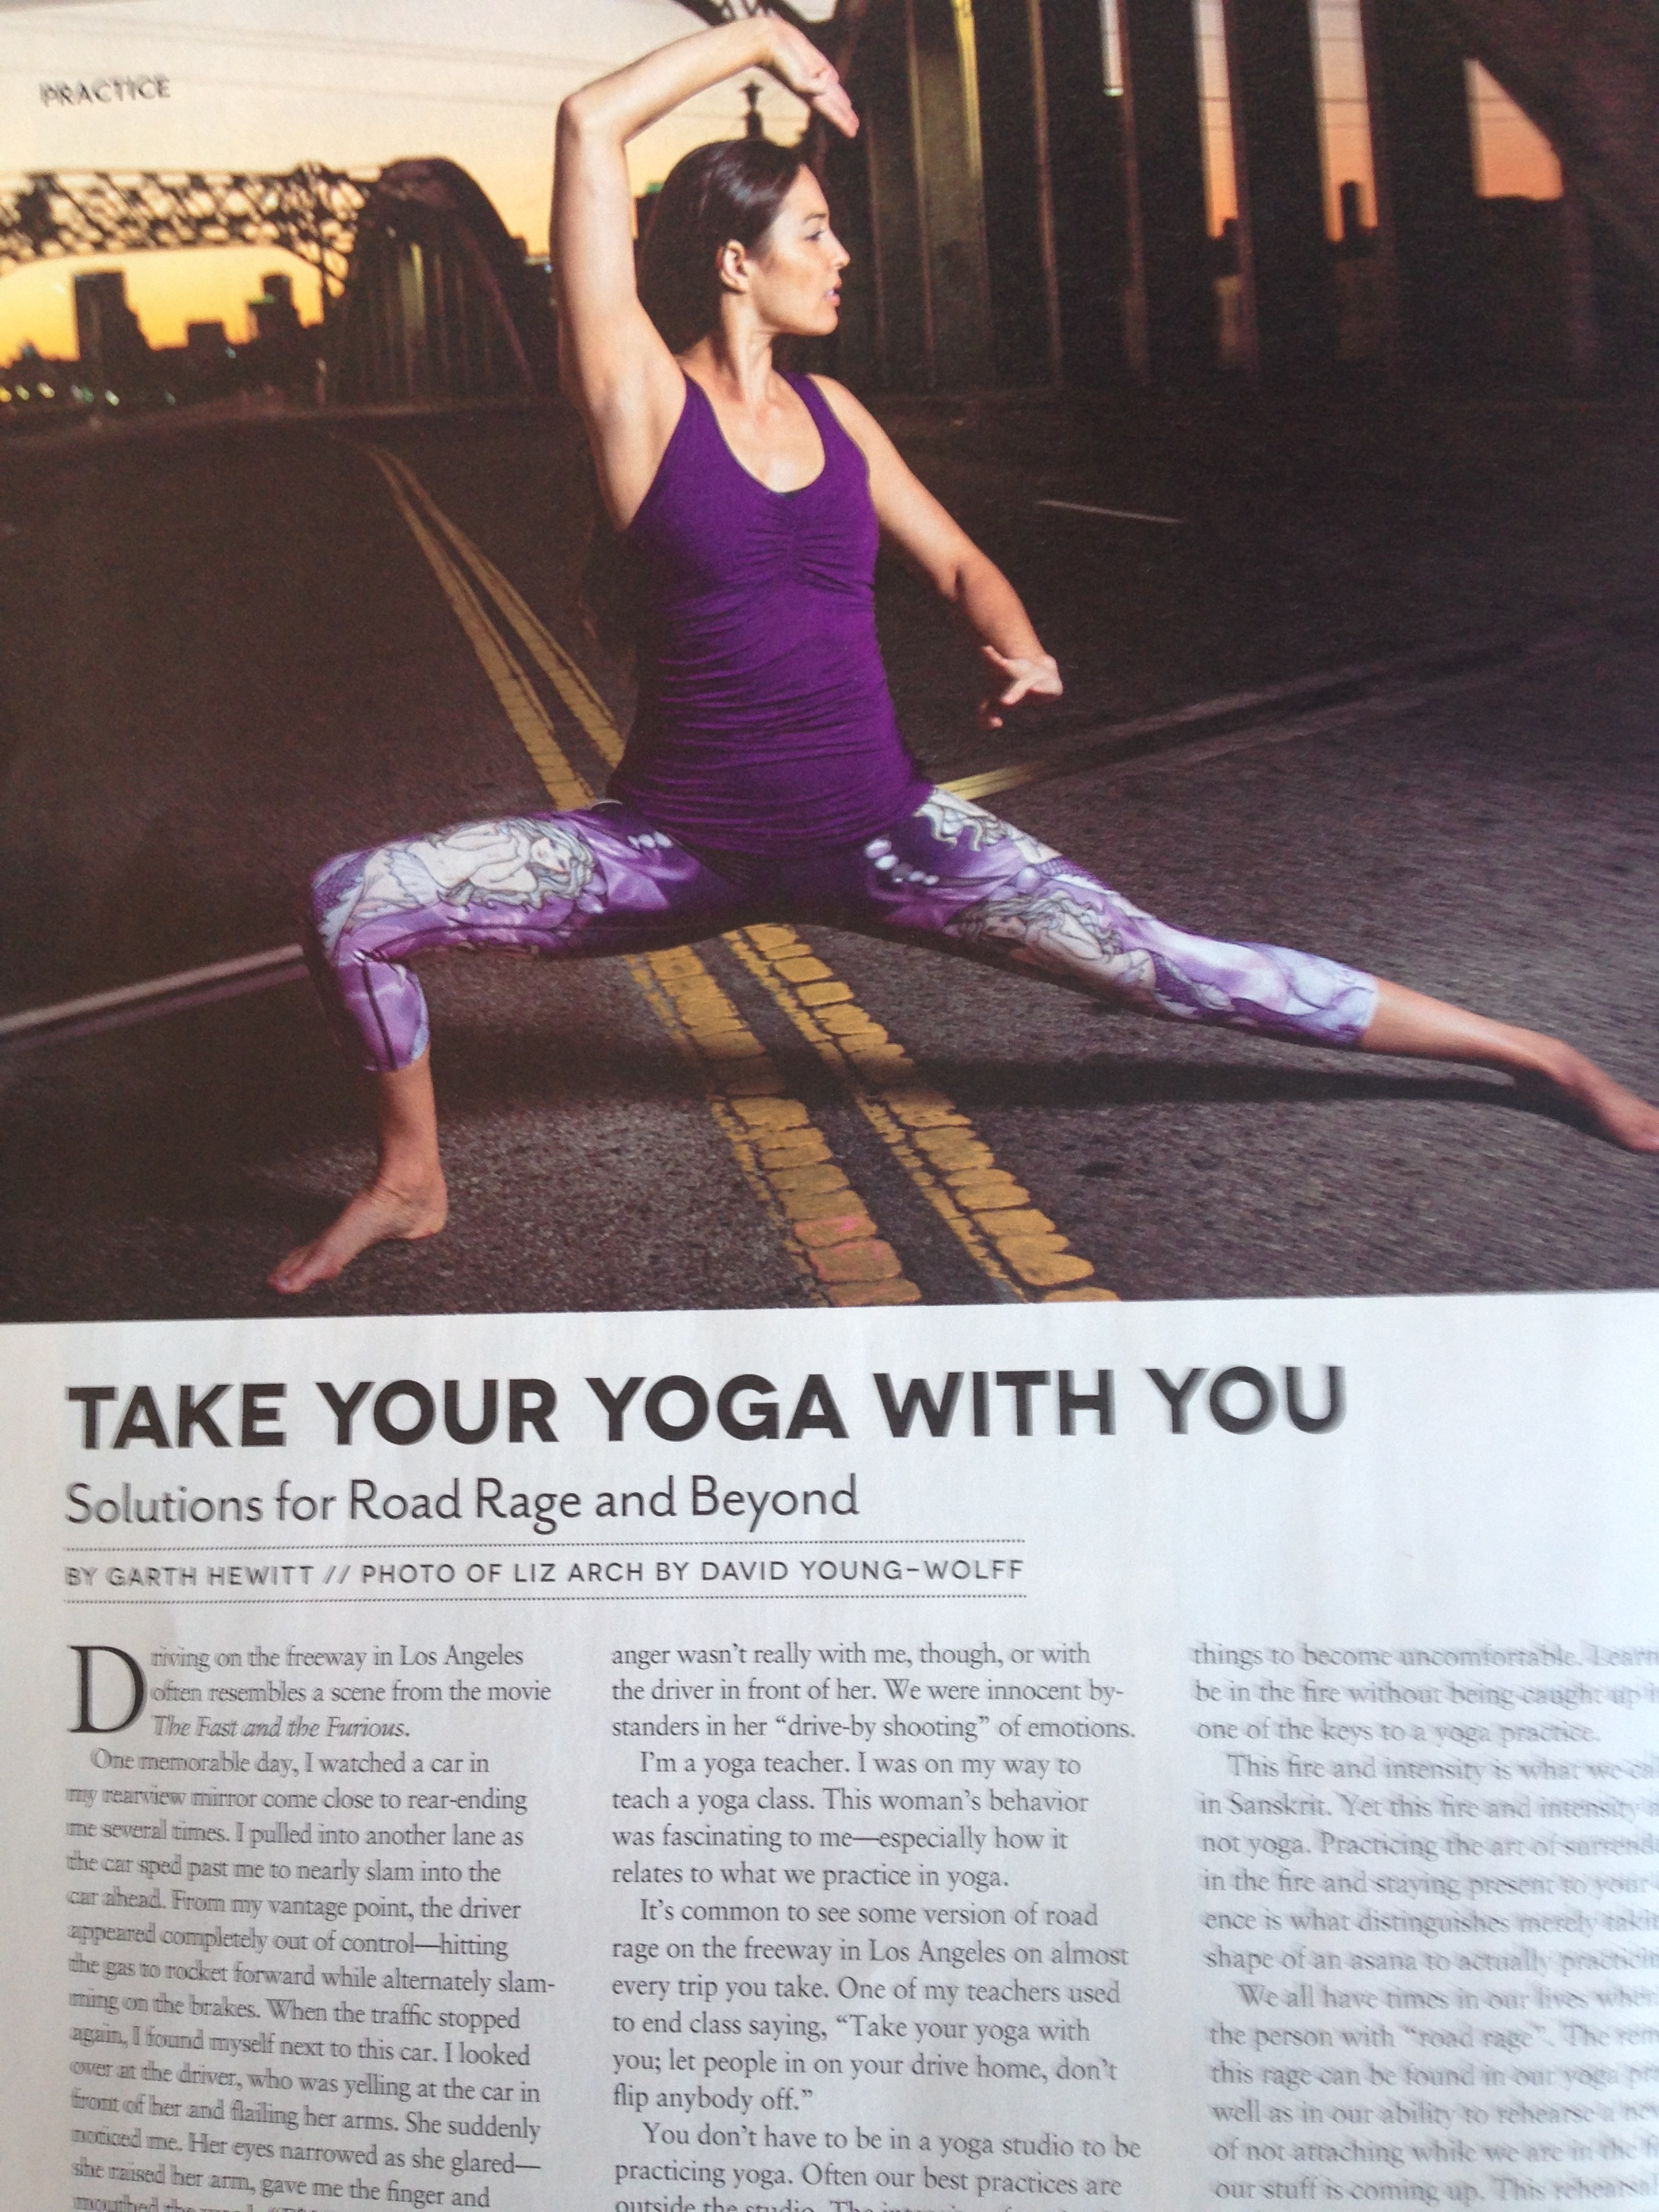 Take Your Yoga With You -- Lessons for Road Rage and Beyond by Garth Hewitt